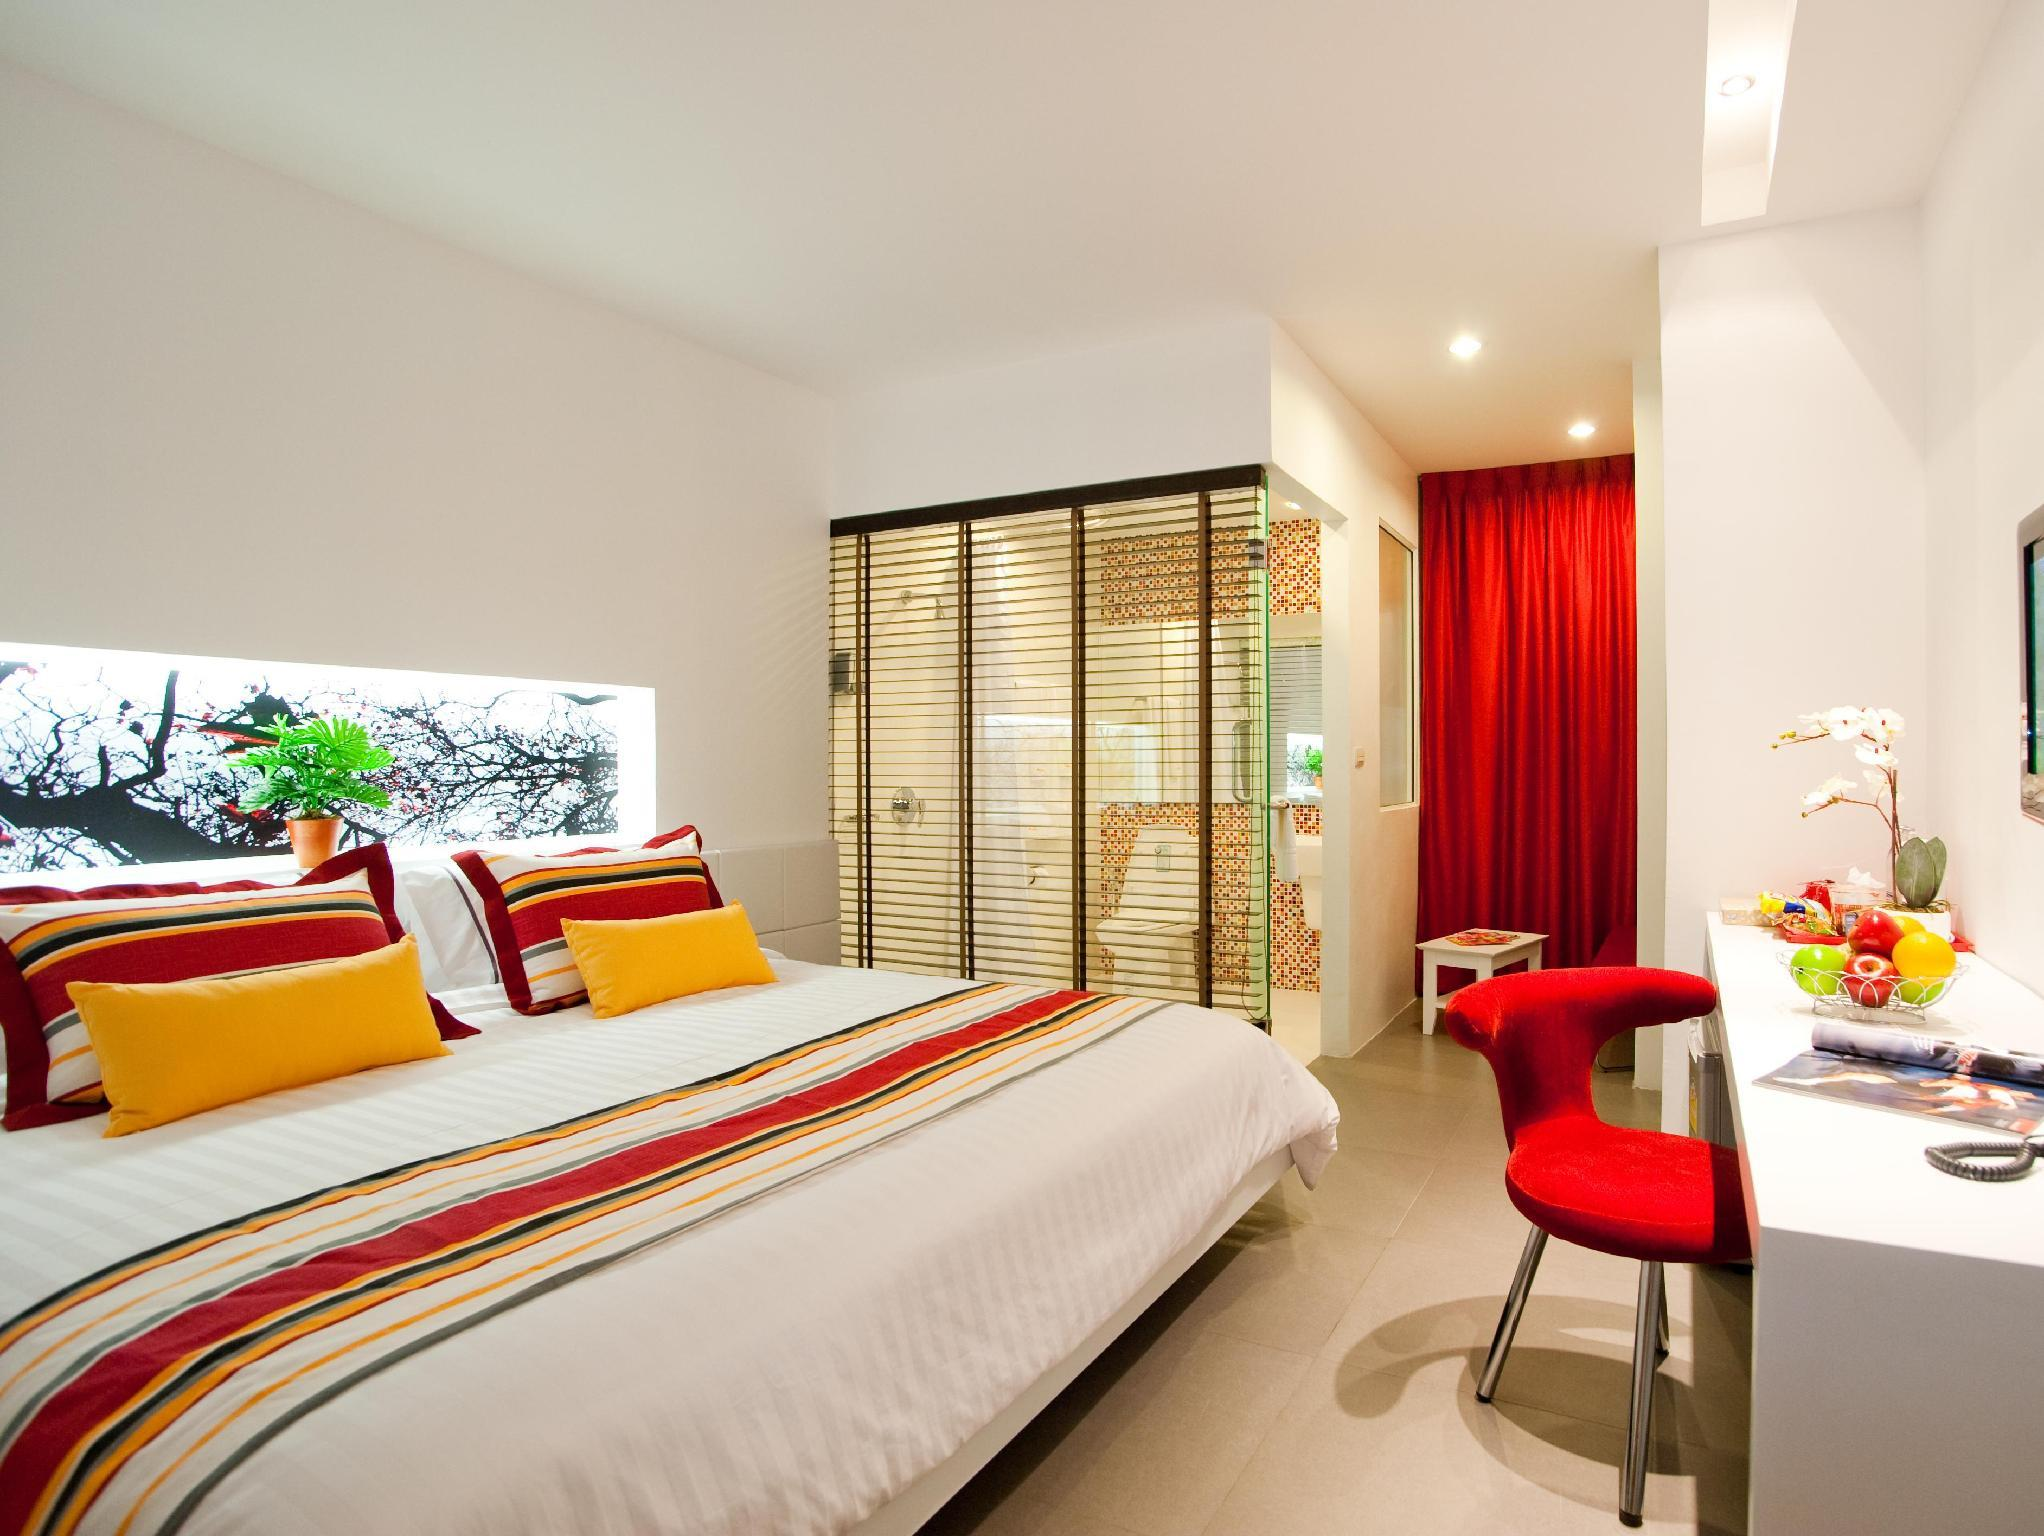 Best Price On The Gallery Hotel In Phuket   Reviews